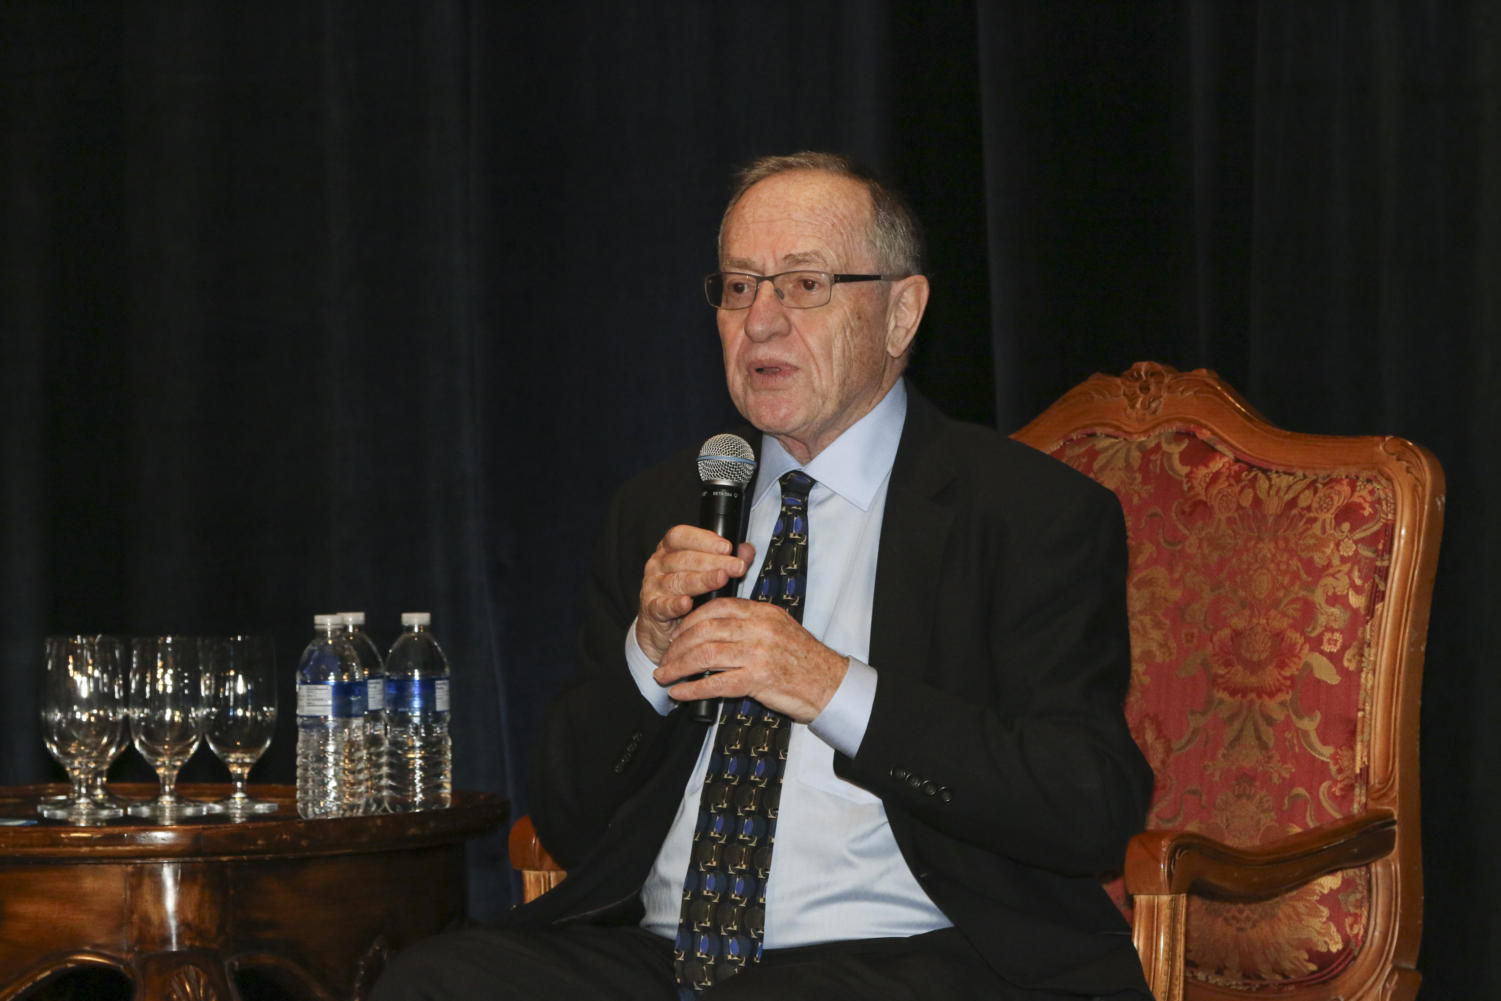 Alan Dershowitz at the 2015 Len Mazur Memorial Lecture. Photo from The Jewish Federation of Sarasota-Manatee on Flickr